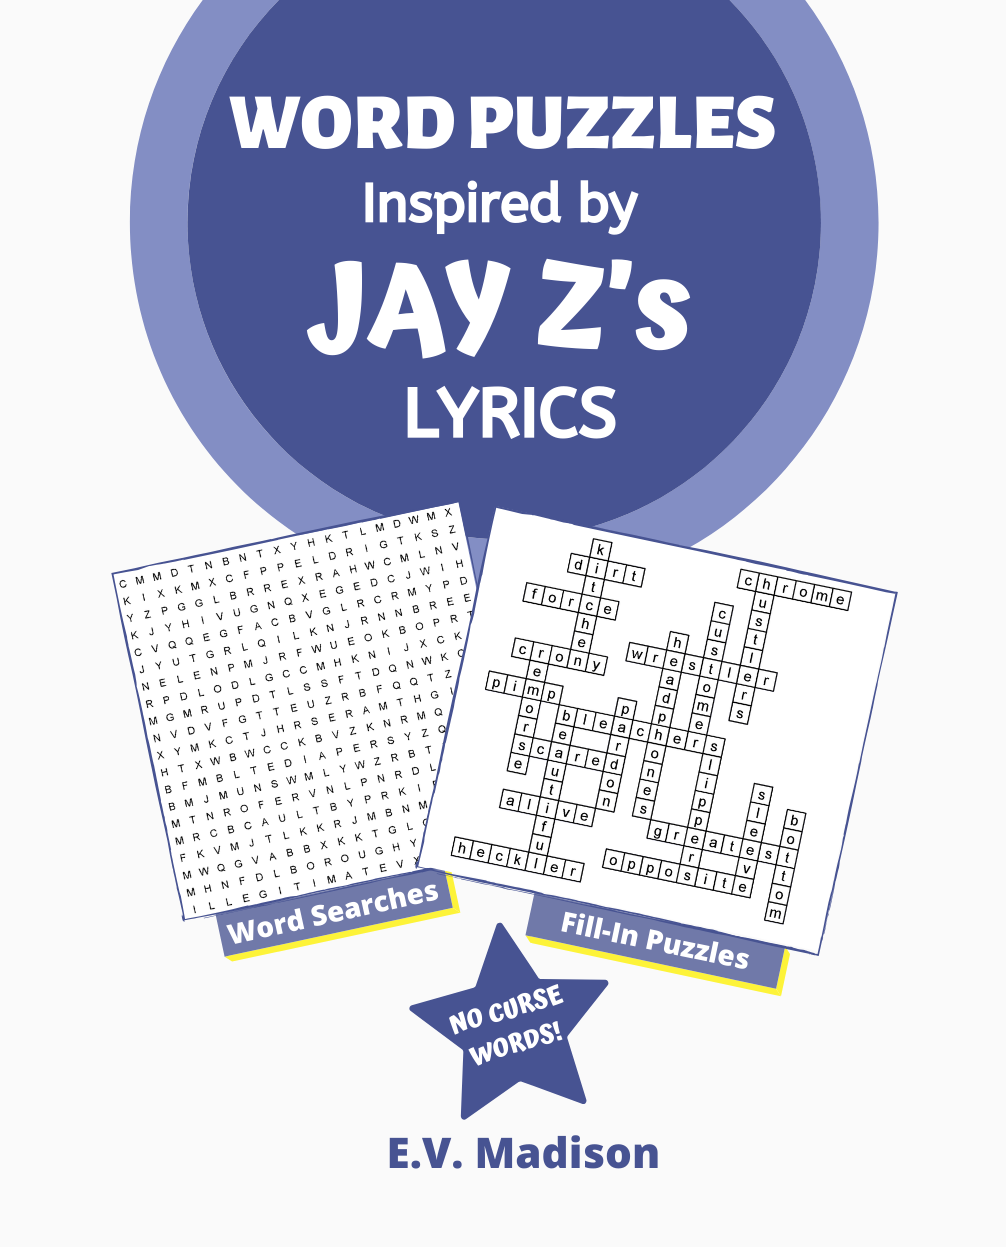 Word Puzzles Inspired by JAY Z's Lyrics